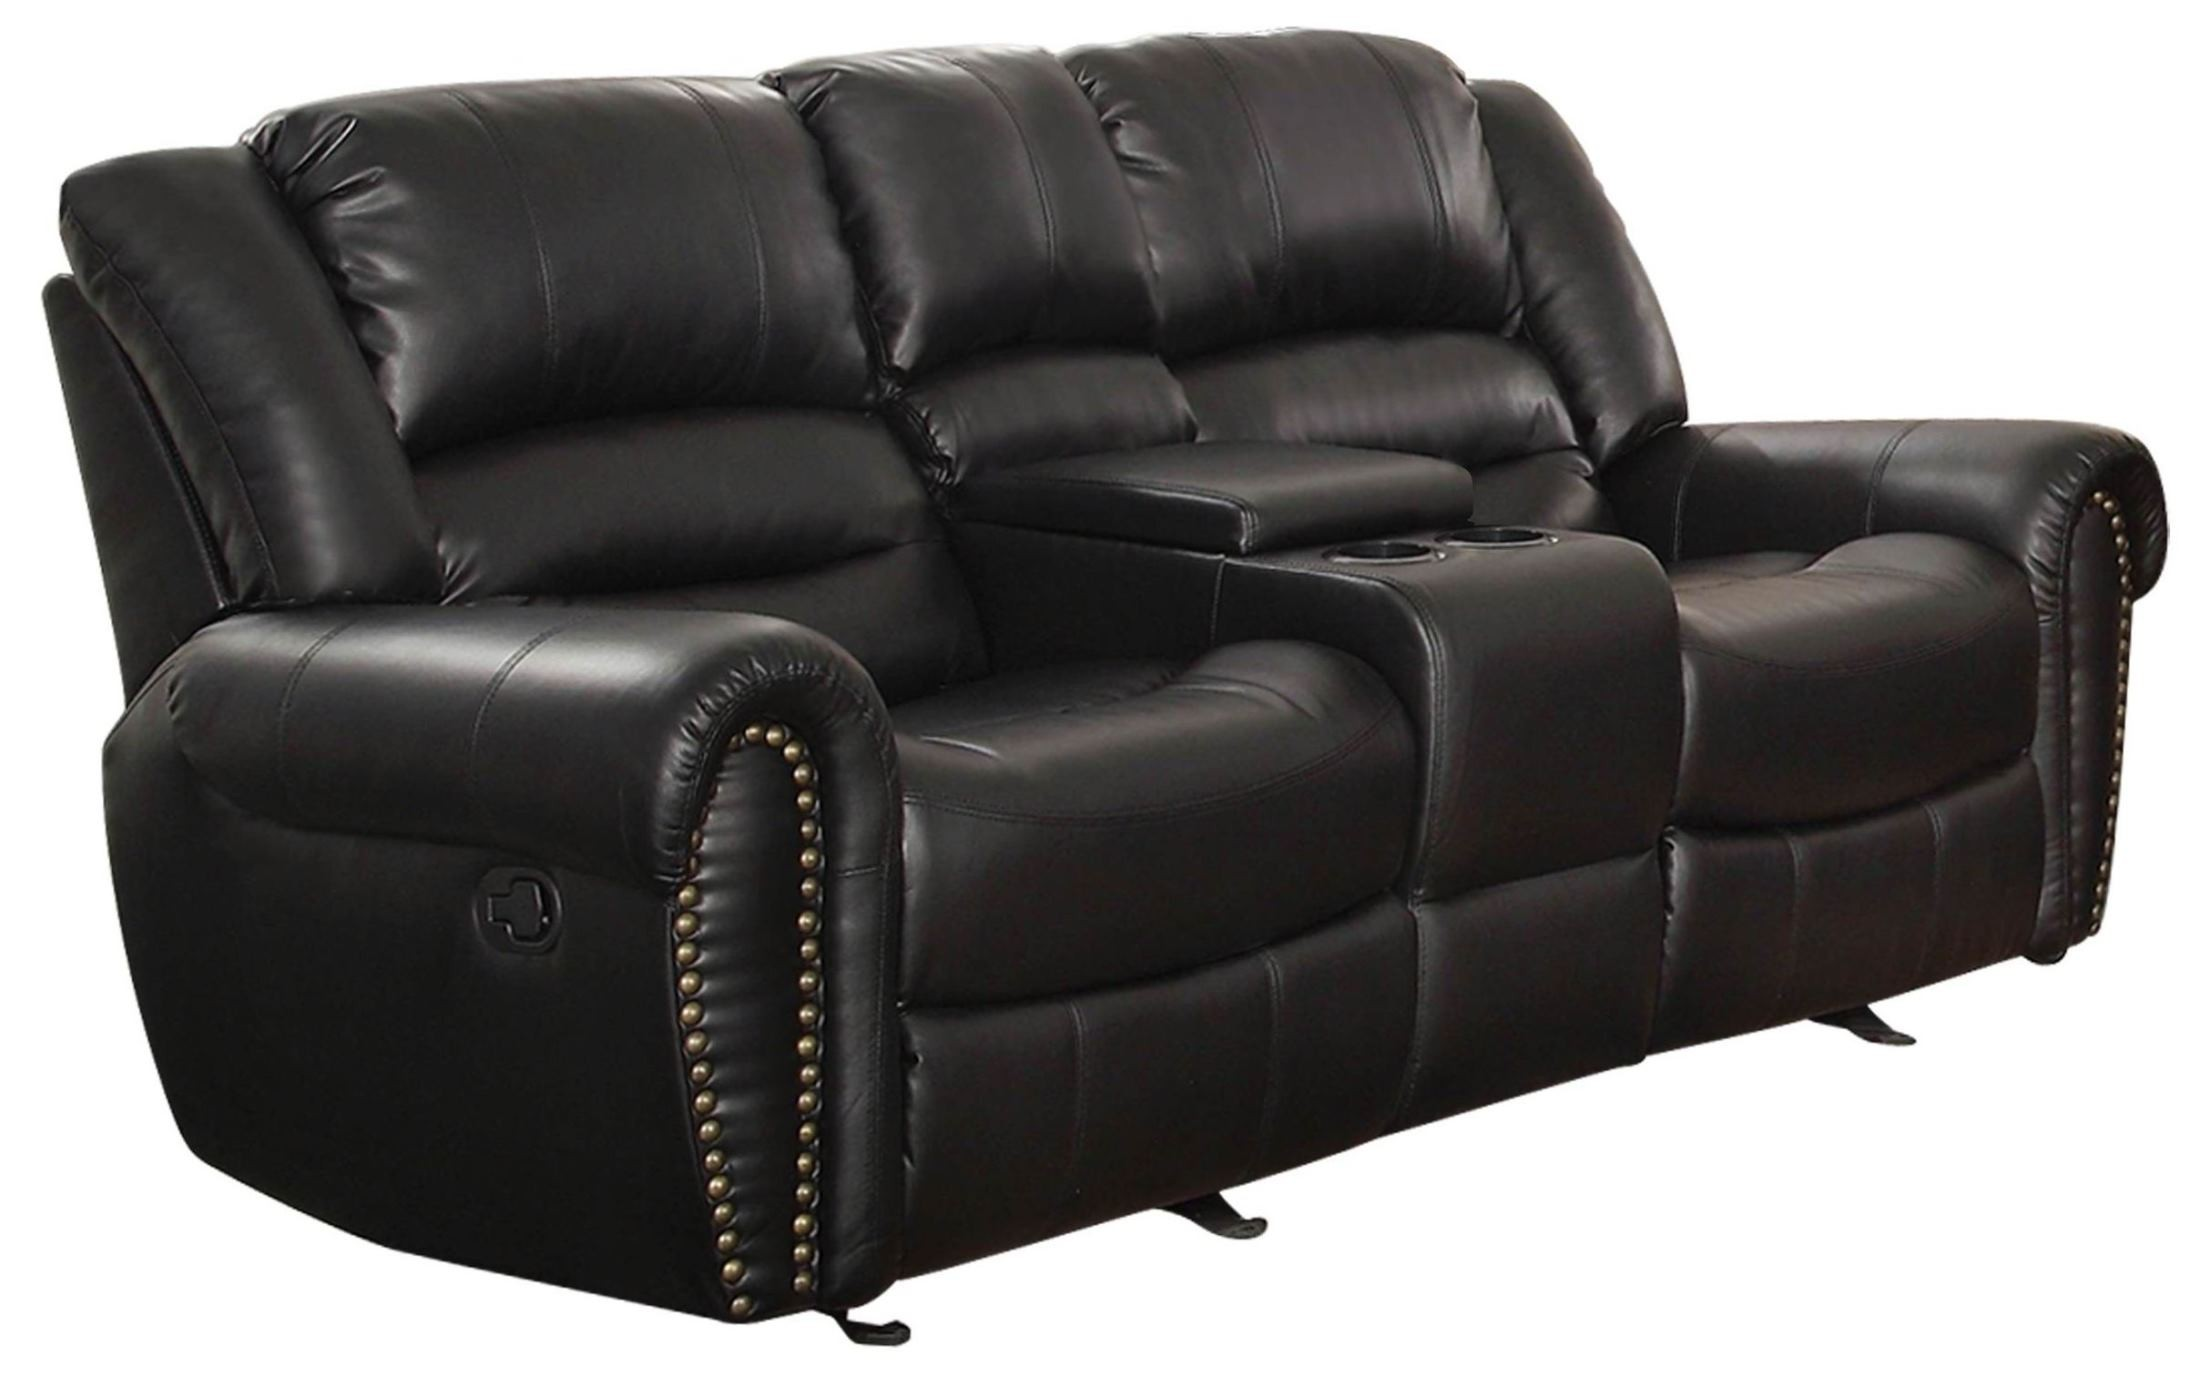 Center hill black power double reclining console loveseat from homelegance 9668blk 2pw Reclining loveseat with center console